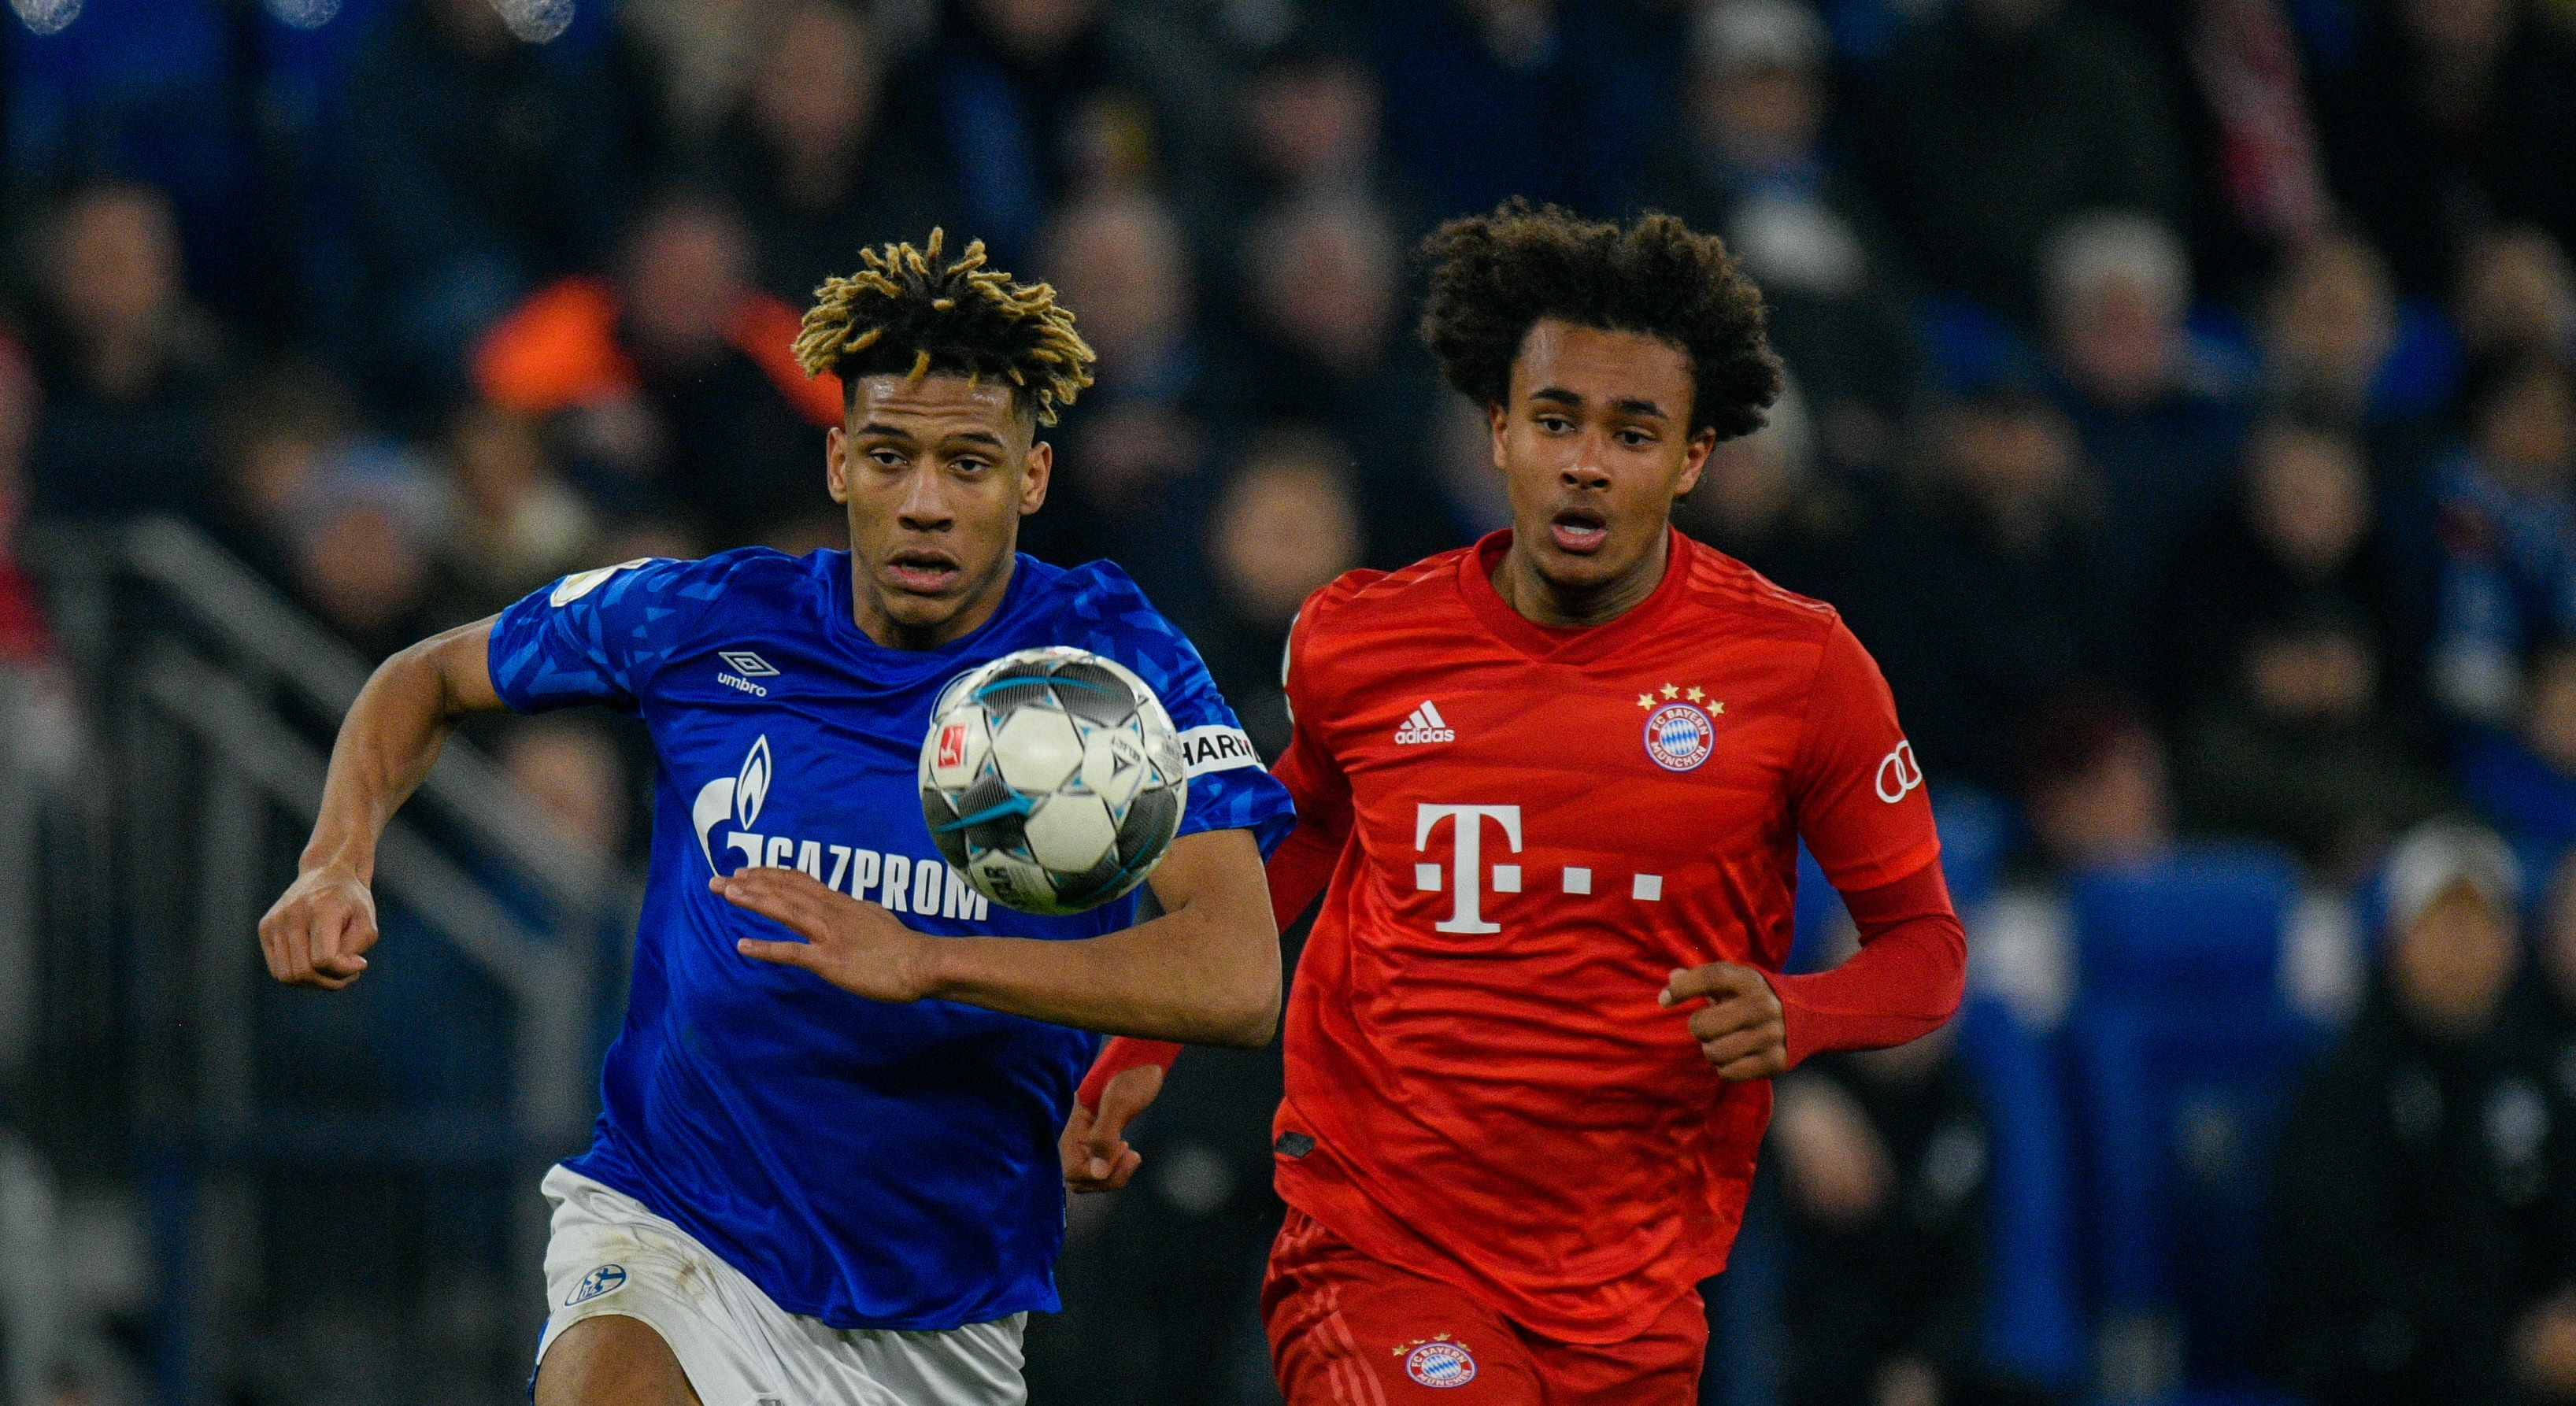 Wolves receive positive update in pursuit of Barcelona's Todibo who is in action in the photo